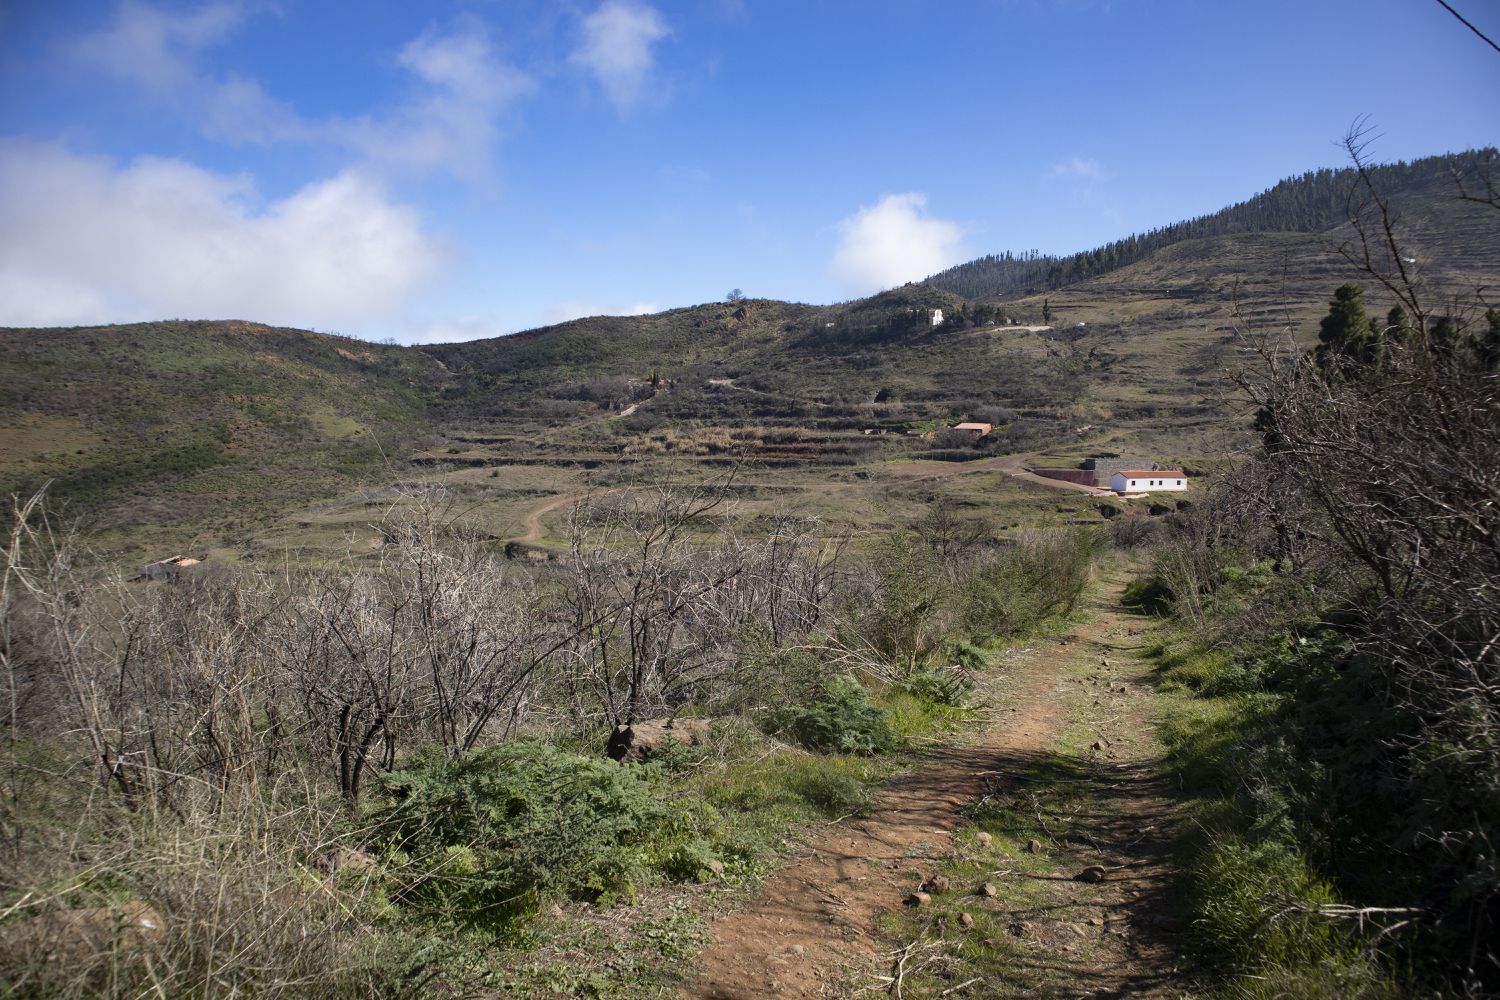 Hiking trail past terraced fields